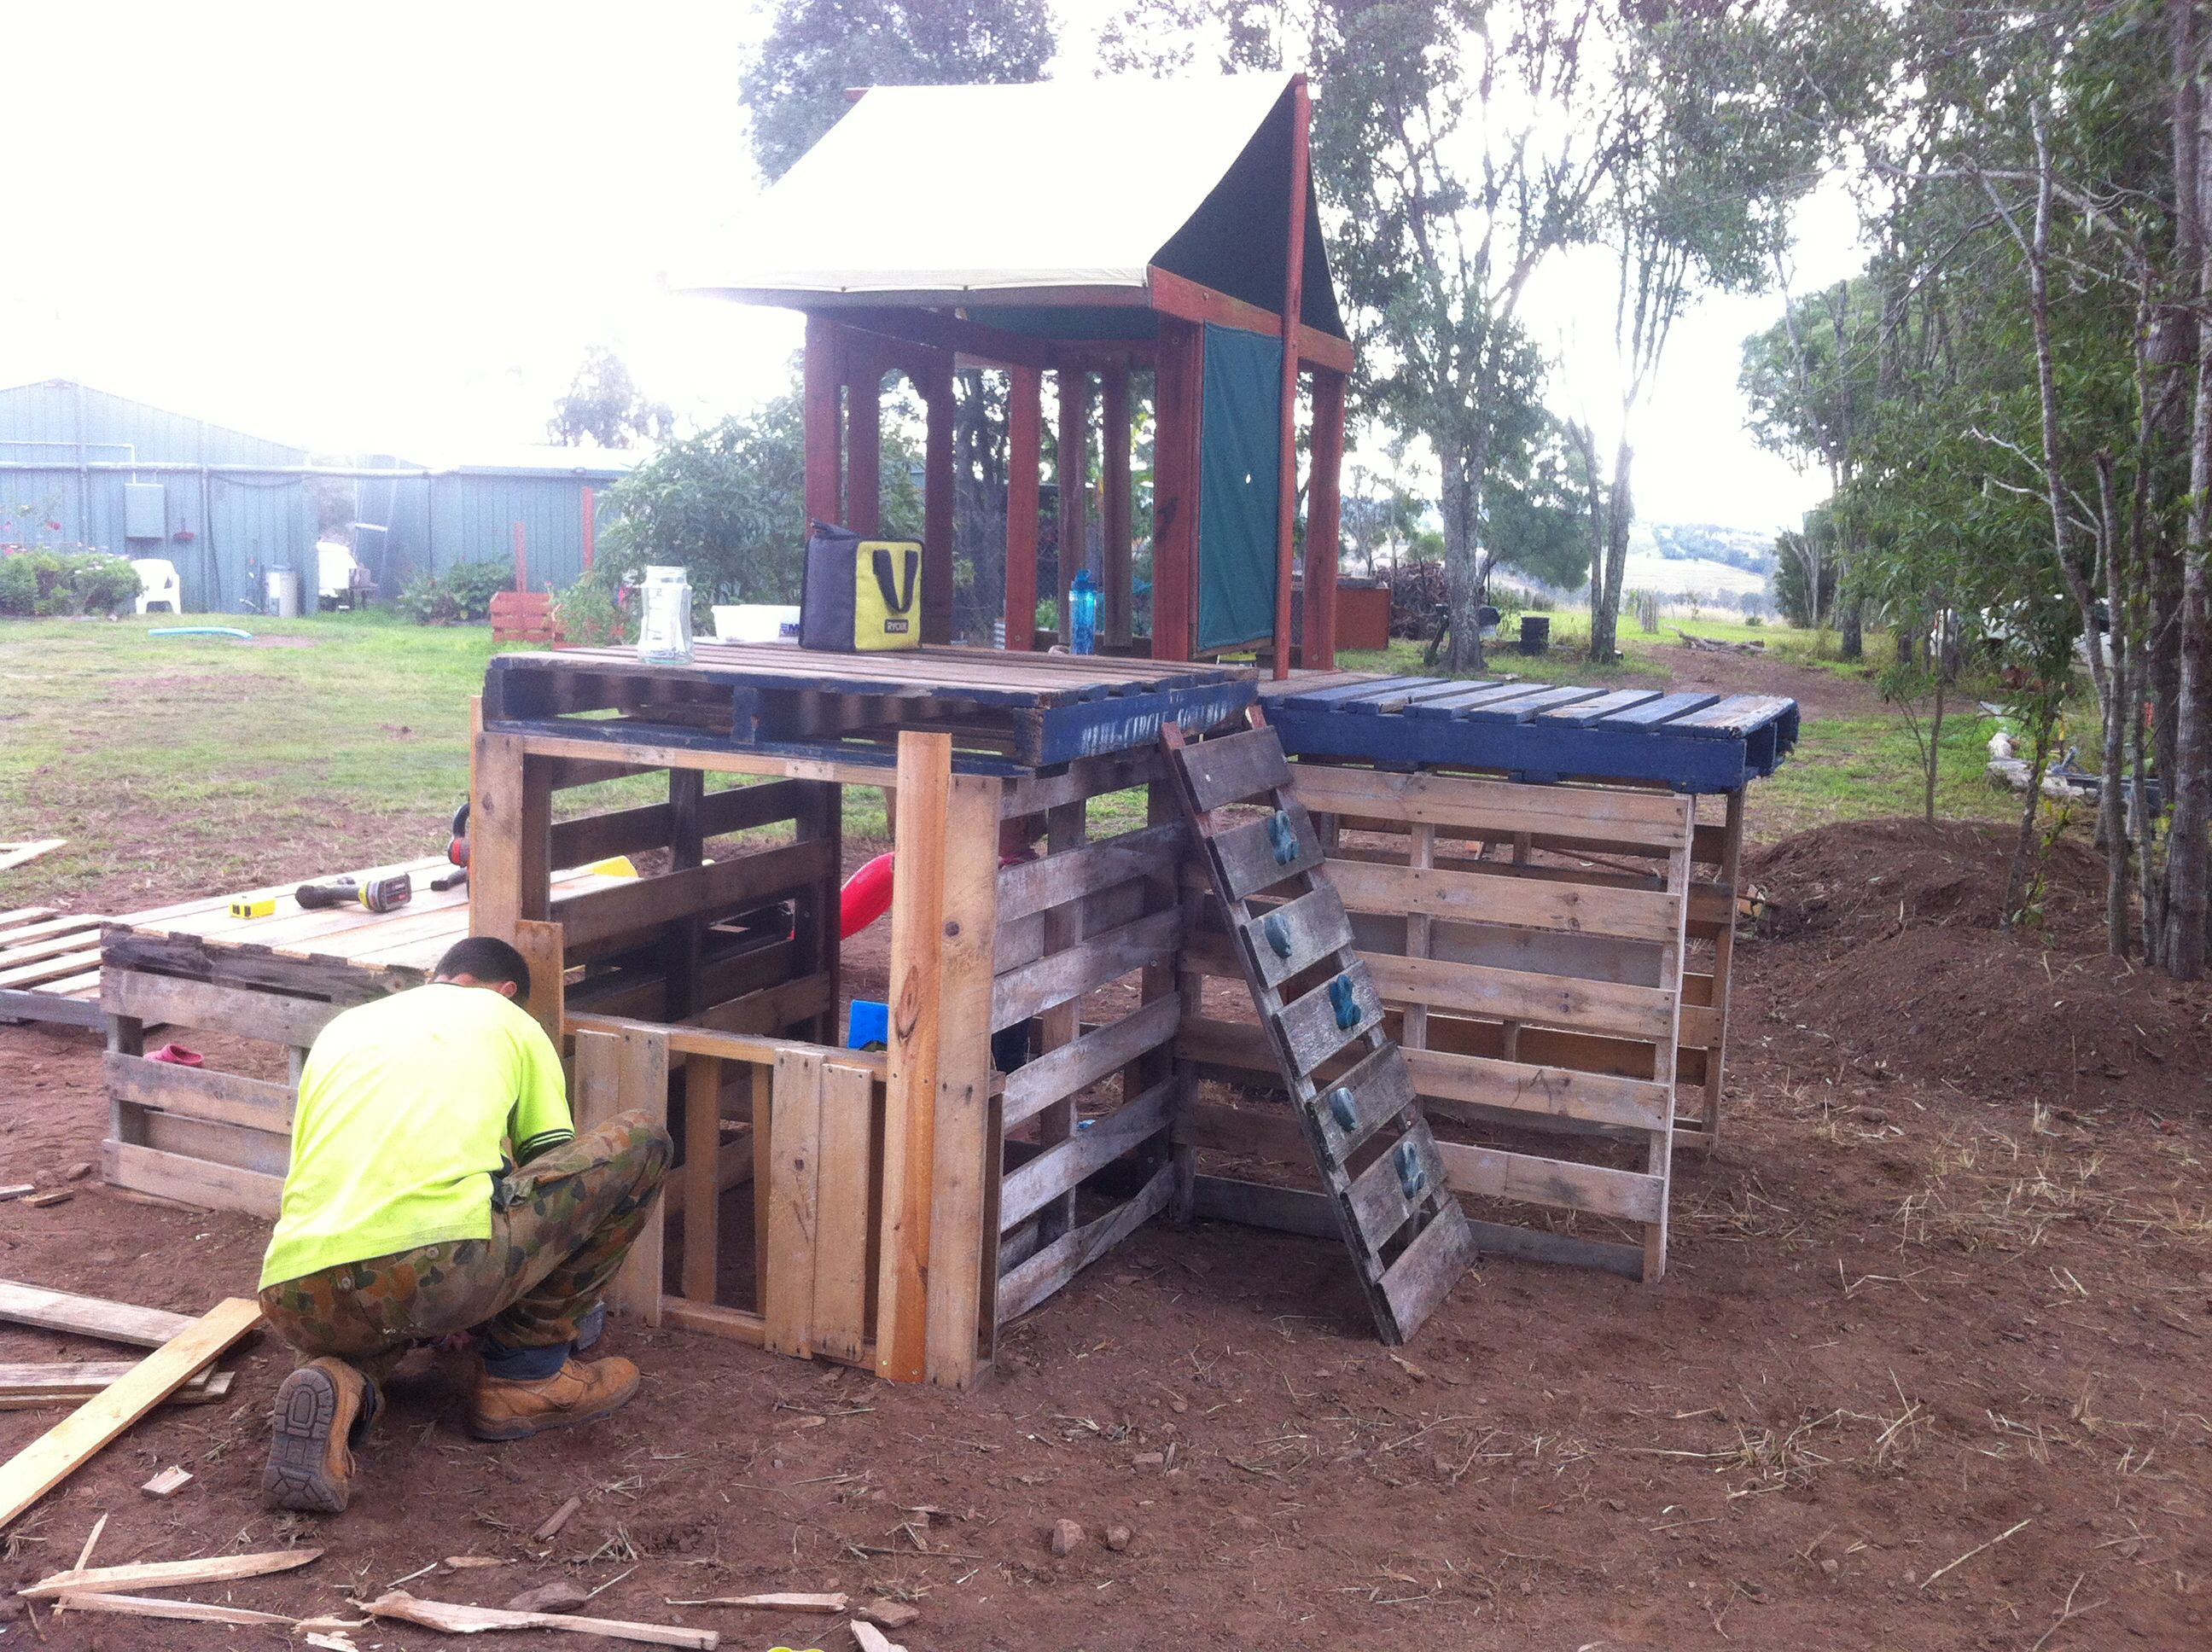 1001 pallets pallet kids playground here is a home made playground - Pallet Playground